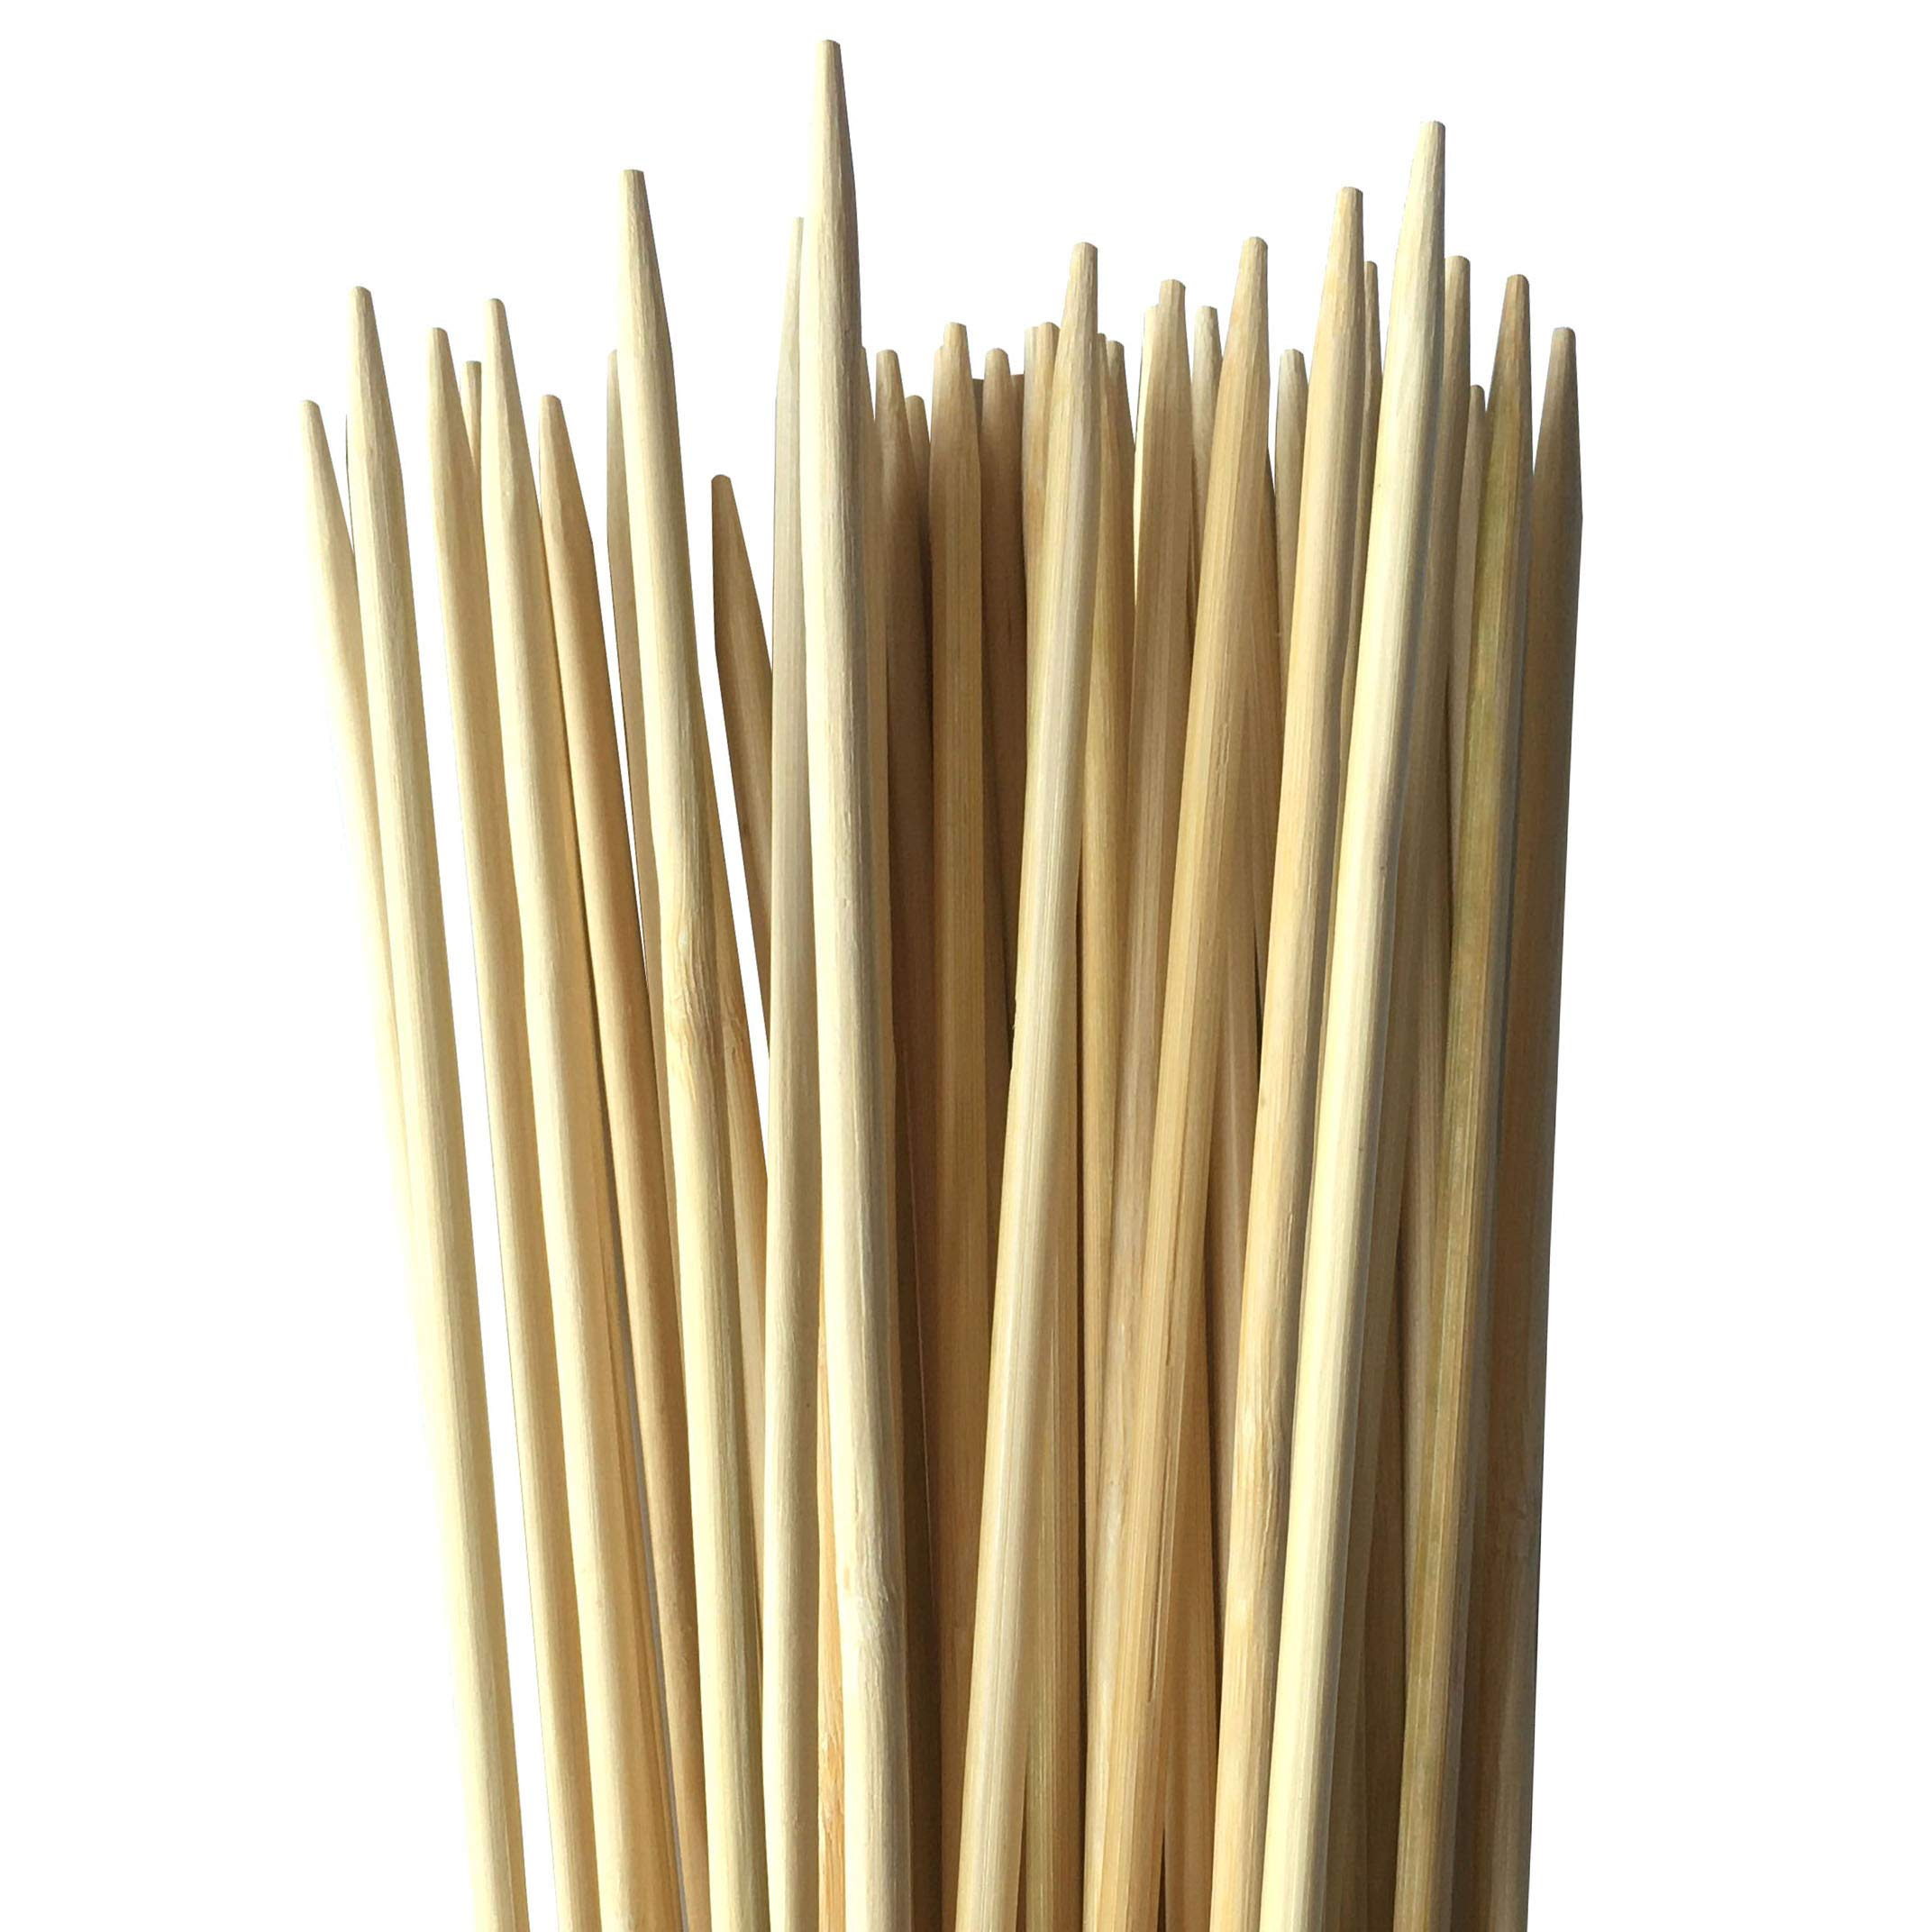 Bamboo Marshmallow Roasting Sticks 36 Inch 6mm Extra Thick Extra Long Heavy Duty Wooden Skewers, 110 Pieces. Great for S'mores Hot Dog Kebab Sausage, Environmentally Safe 100% Biodegradable by NZ Rebadulla